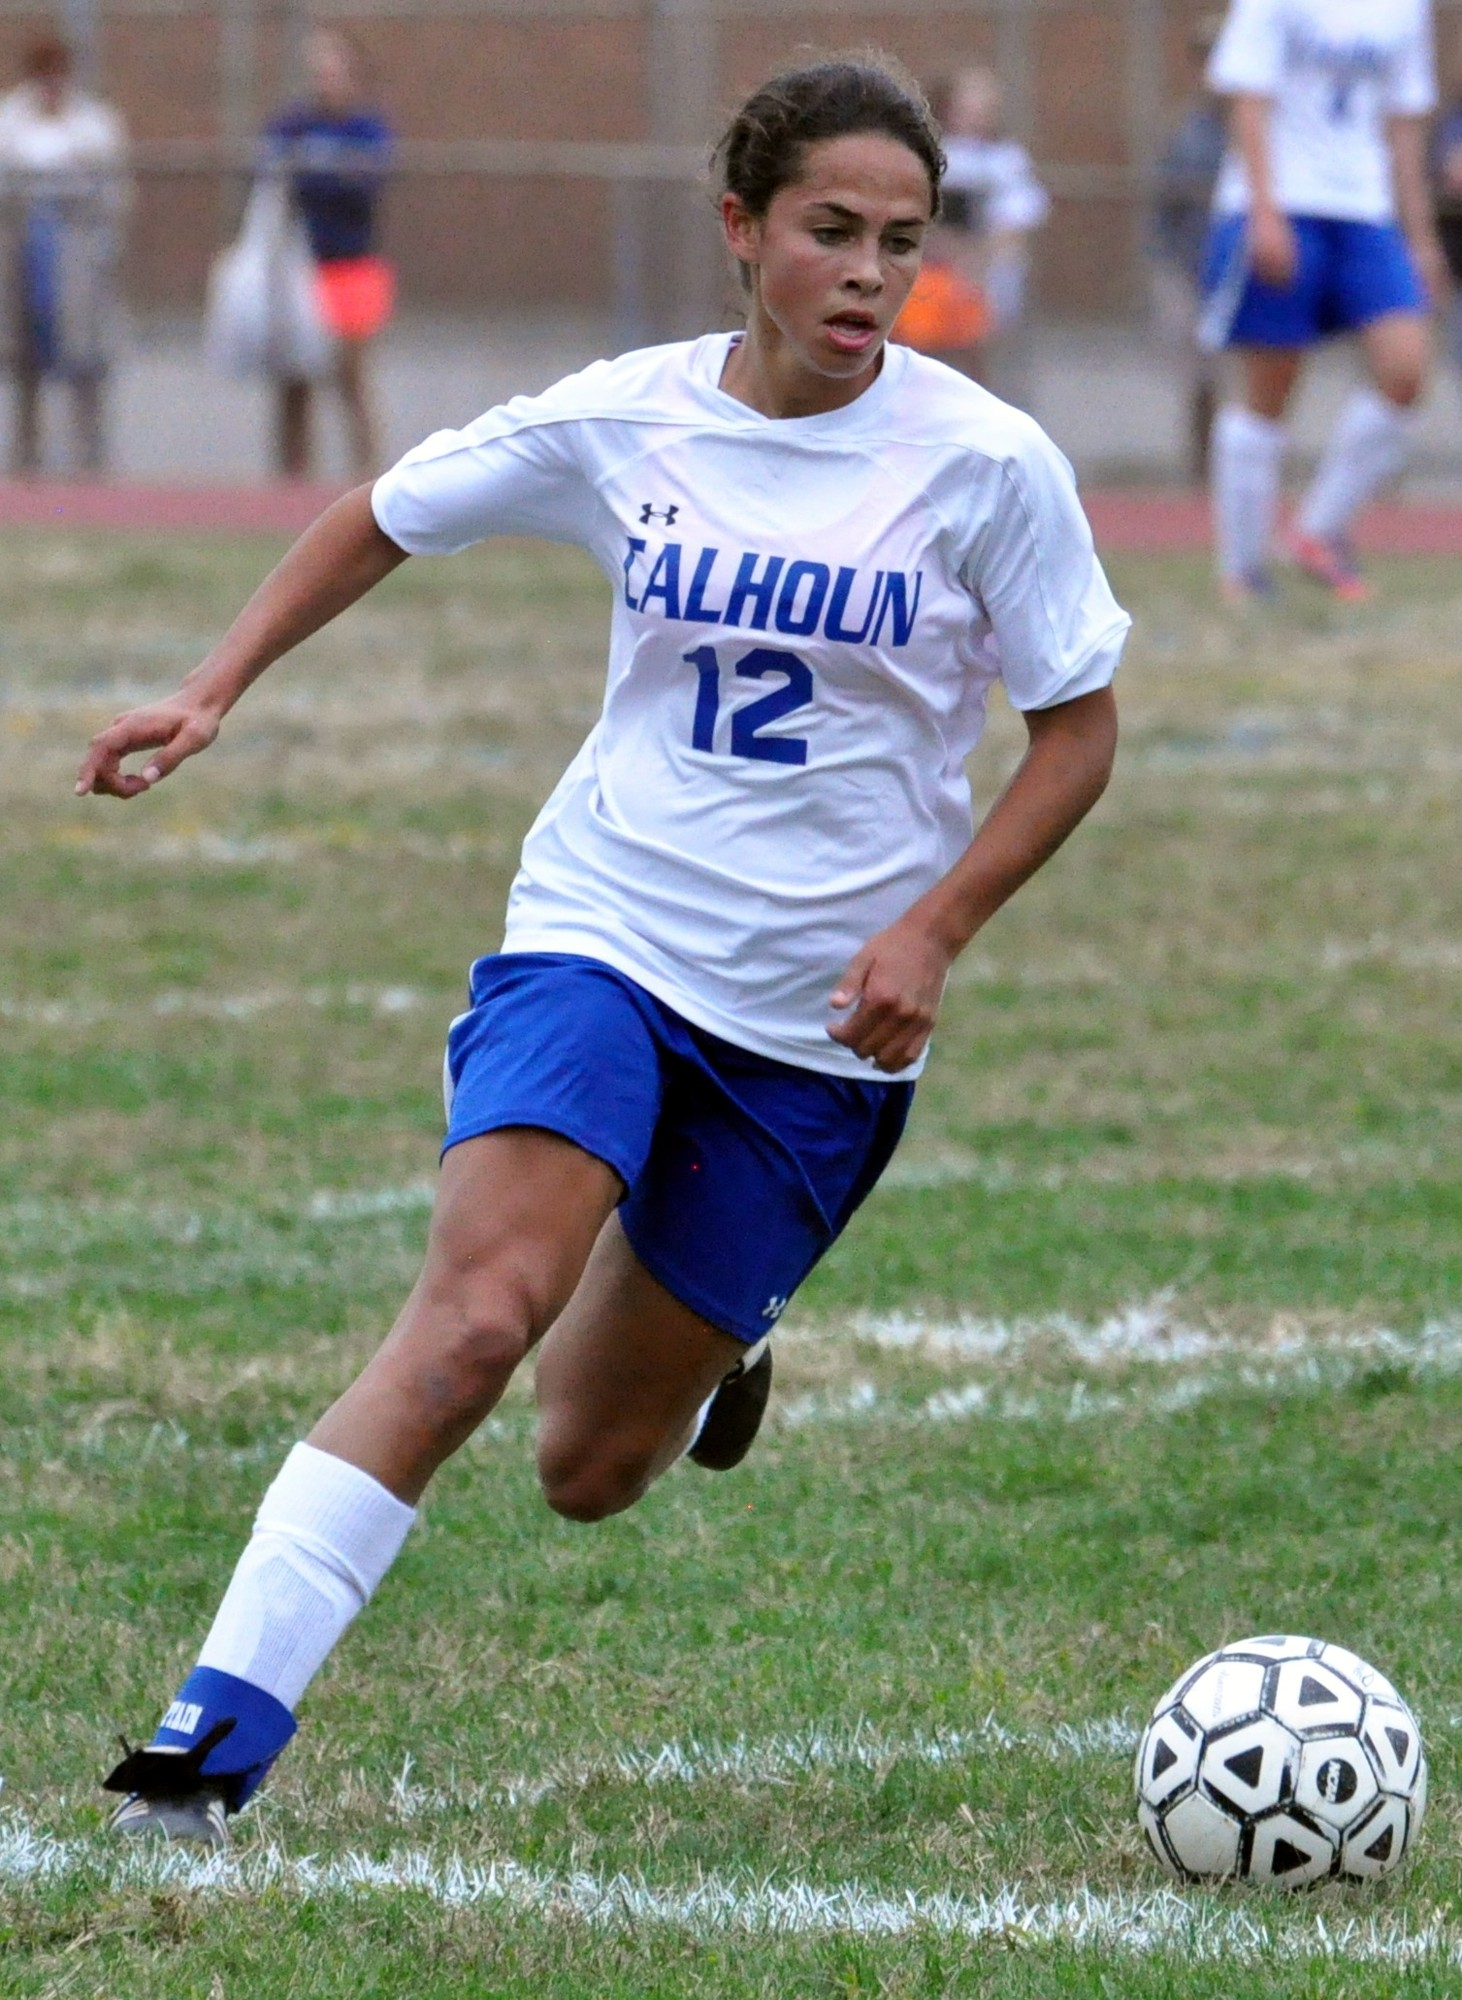 Calhoun High School senior Kayla Cappuzzo was recently named the New York State Gatorade High School Soccer Player of the Year.